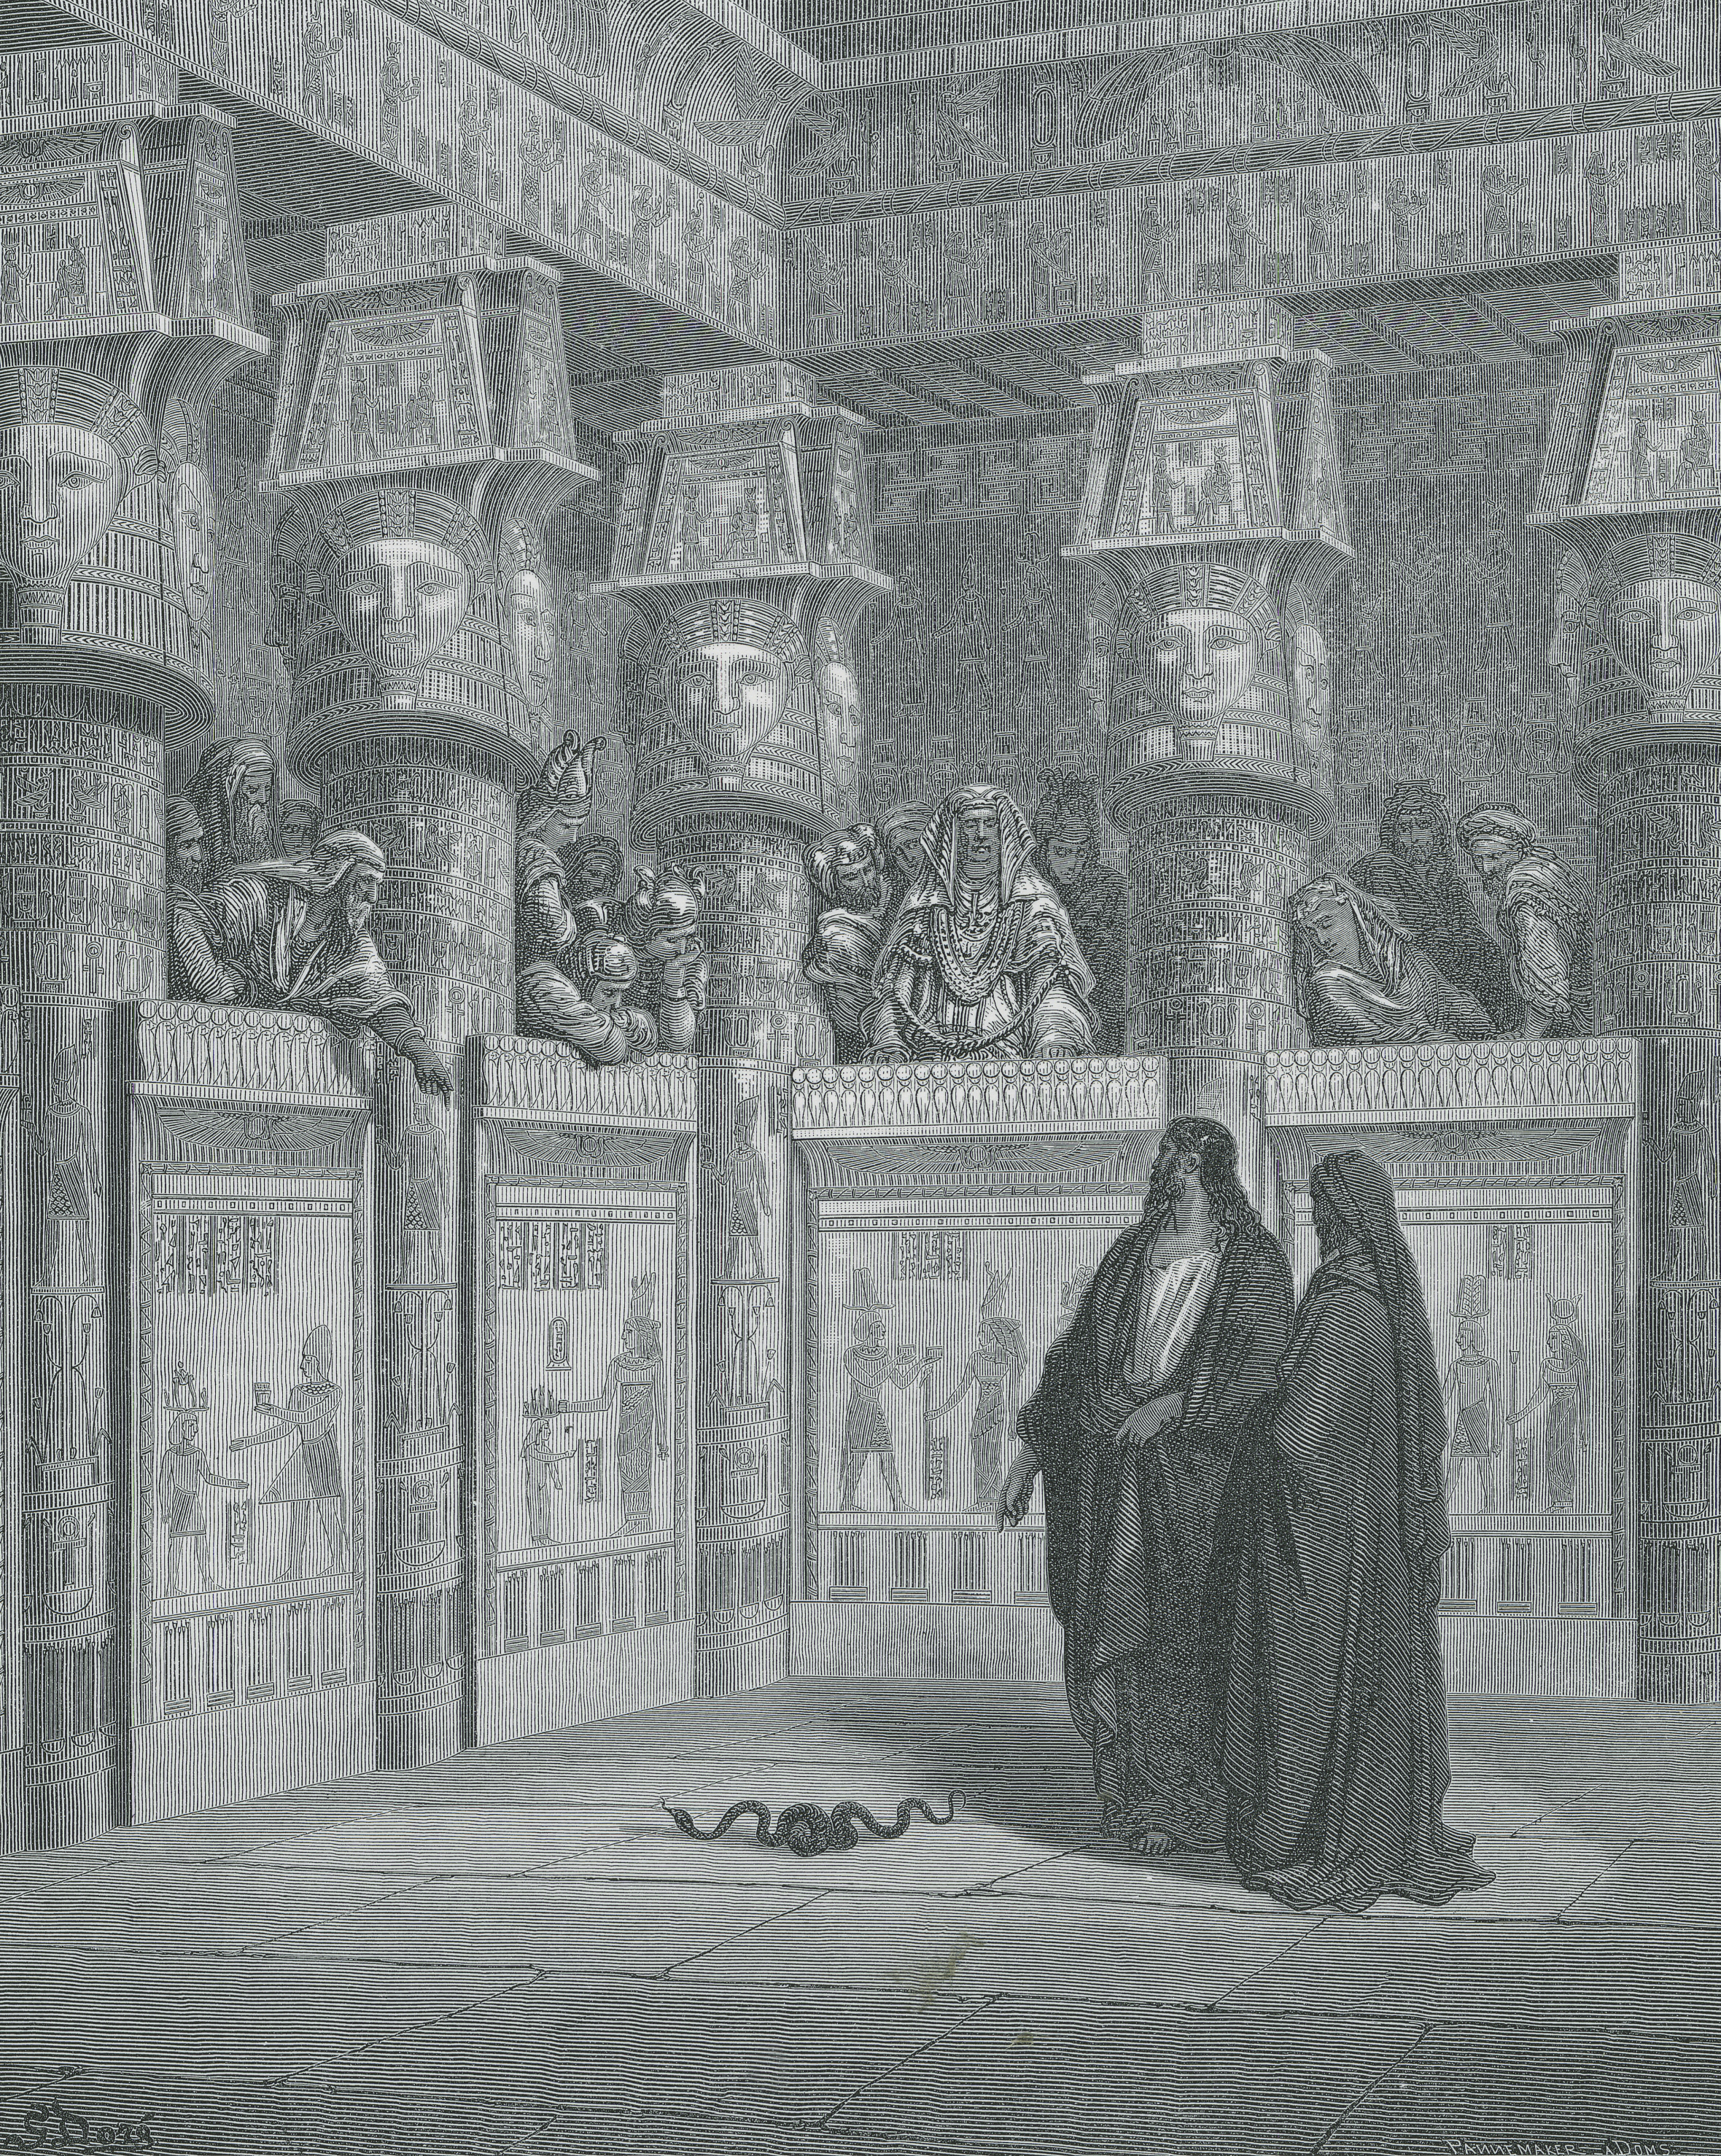 Moses and Aaron before the Pharaoh, by Paul Gustave Doré